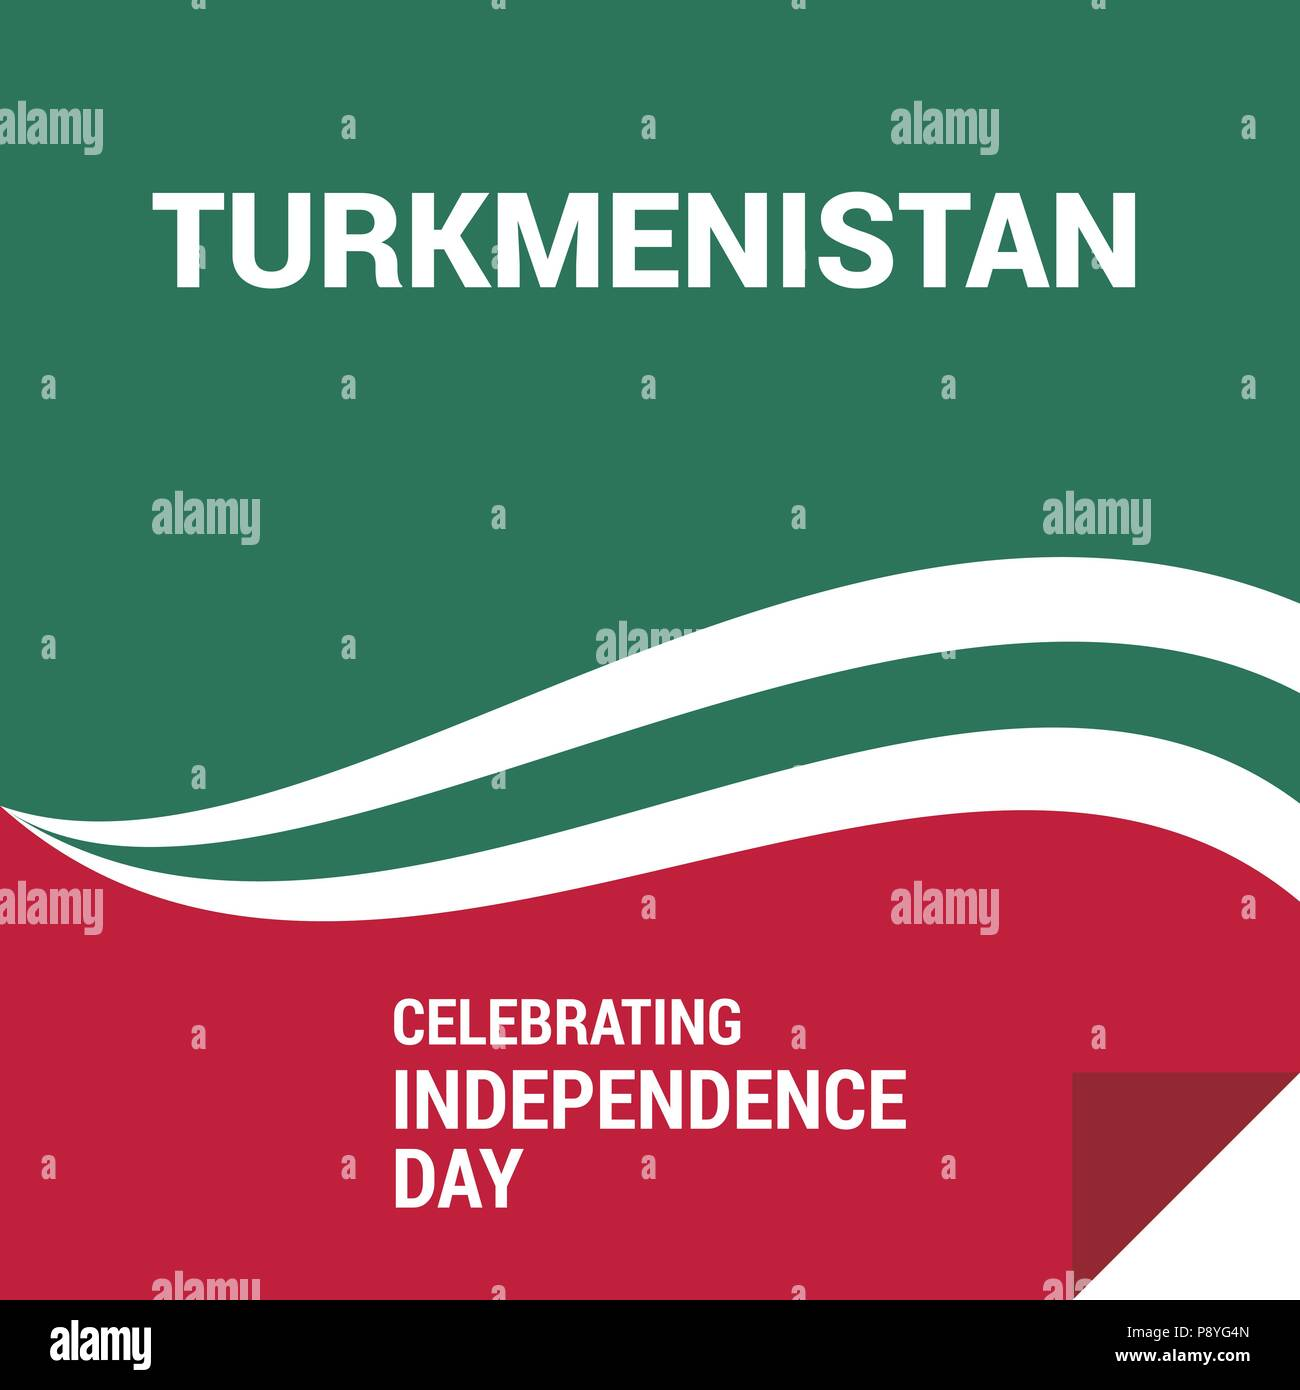 waving flag of Turkmenistan. Template for independence day. vector illustration. For web design and application interface, also useful for infographic - Stock Vector